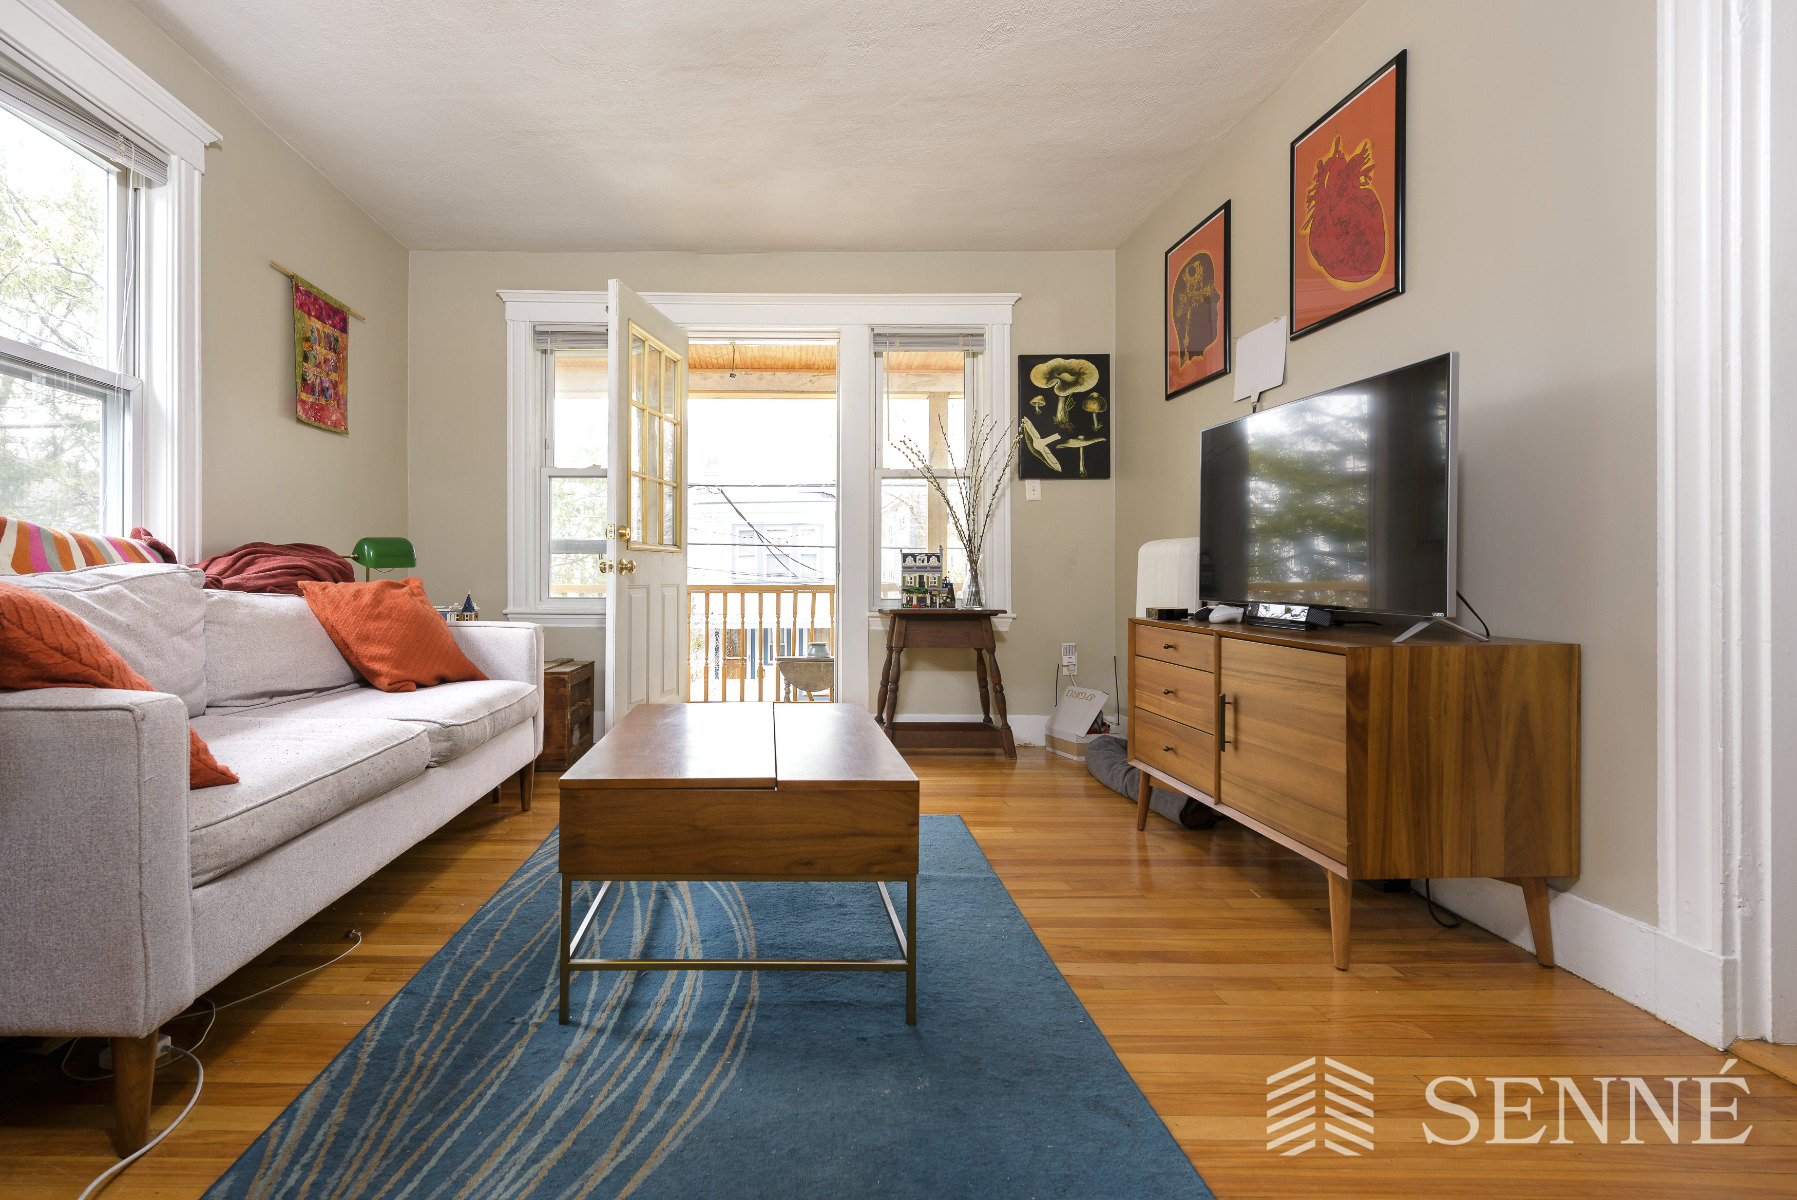 3 Beds, 1 Bath apartment in Somerville, Davis Square for $3,200